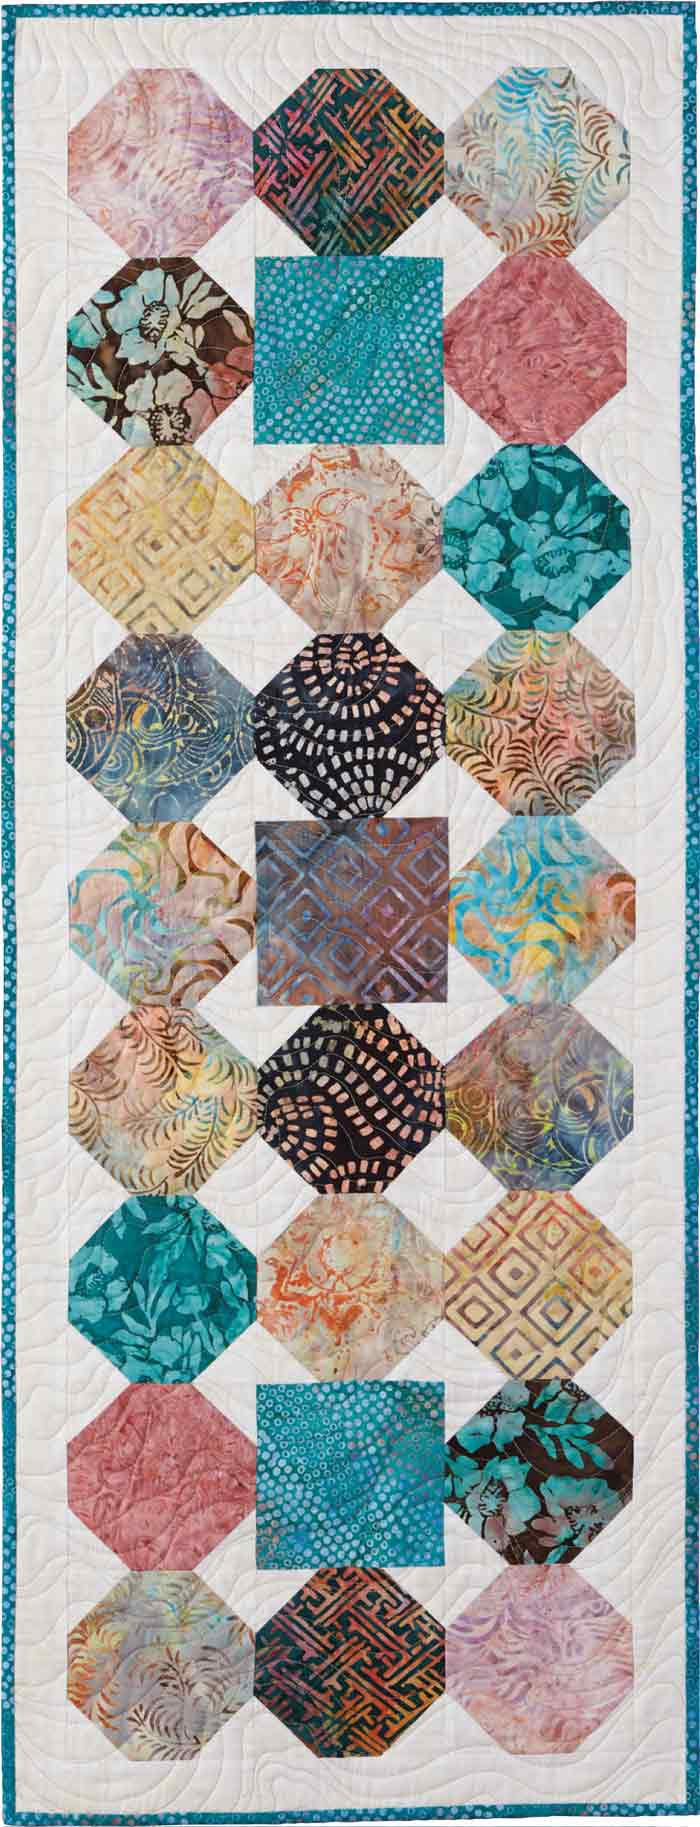 Quilting Patterns And Notions : Square Peg Round Hole Quilt - Fons & Porter - The Quilting Company